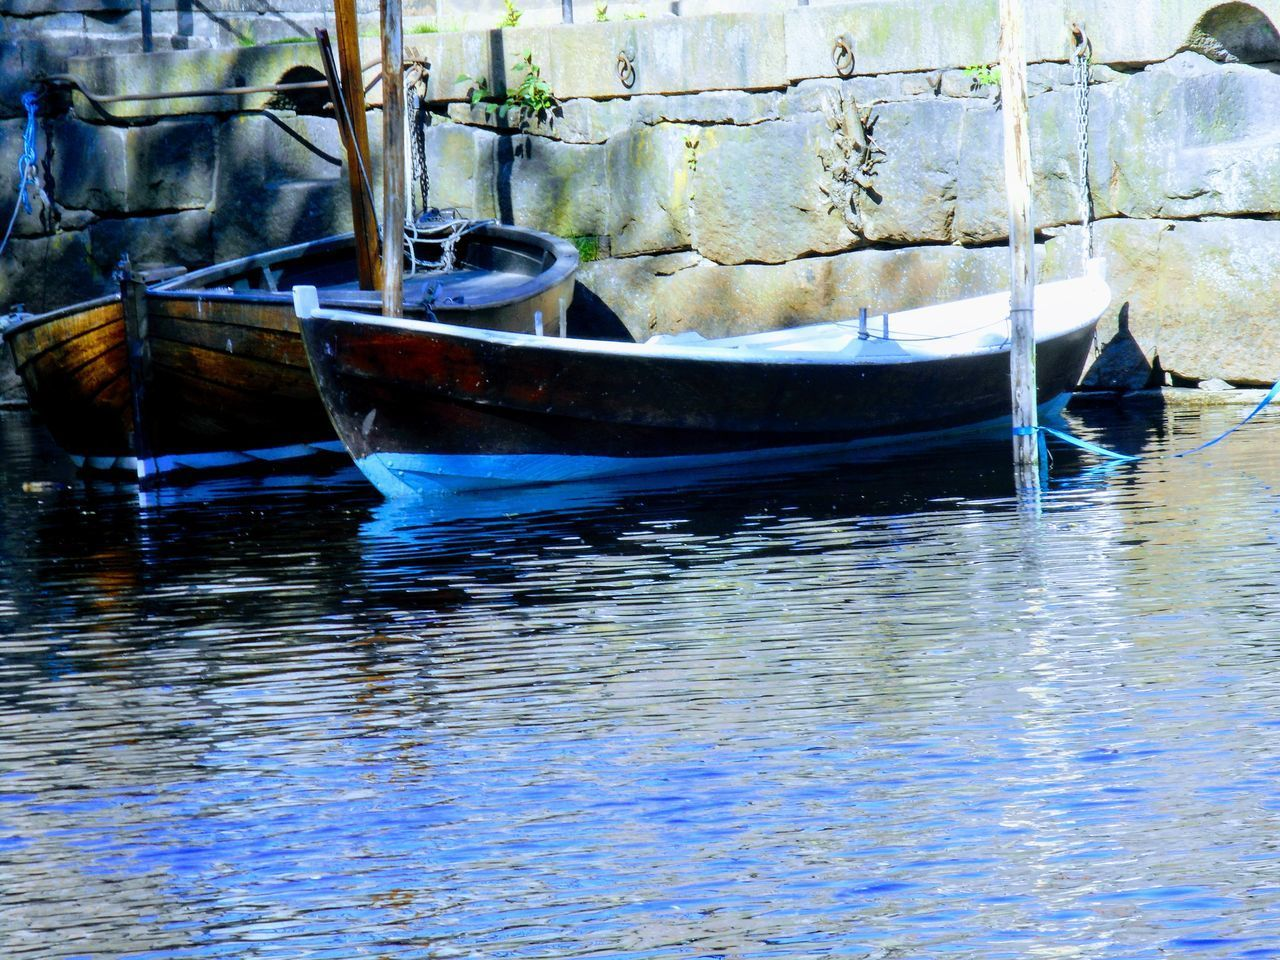 nautical vessel, transportation, mode of transport, water, no people, waterfront, outdoors, day, moored, nature